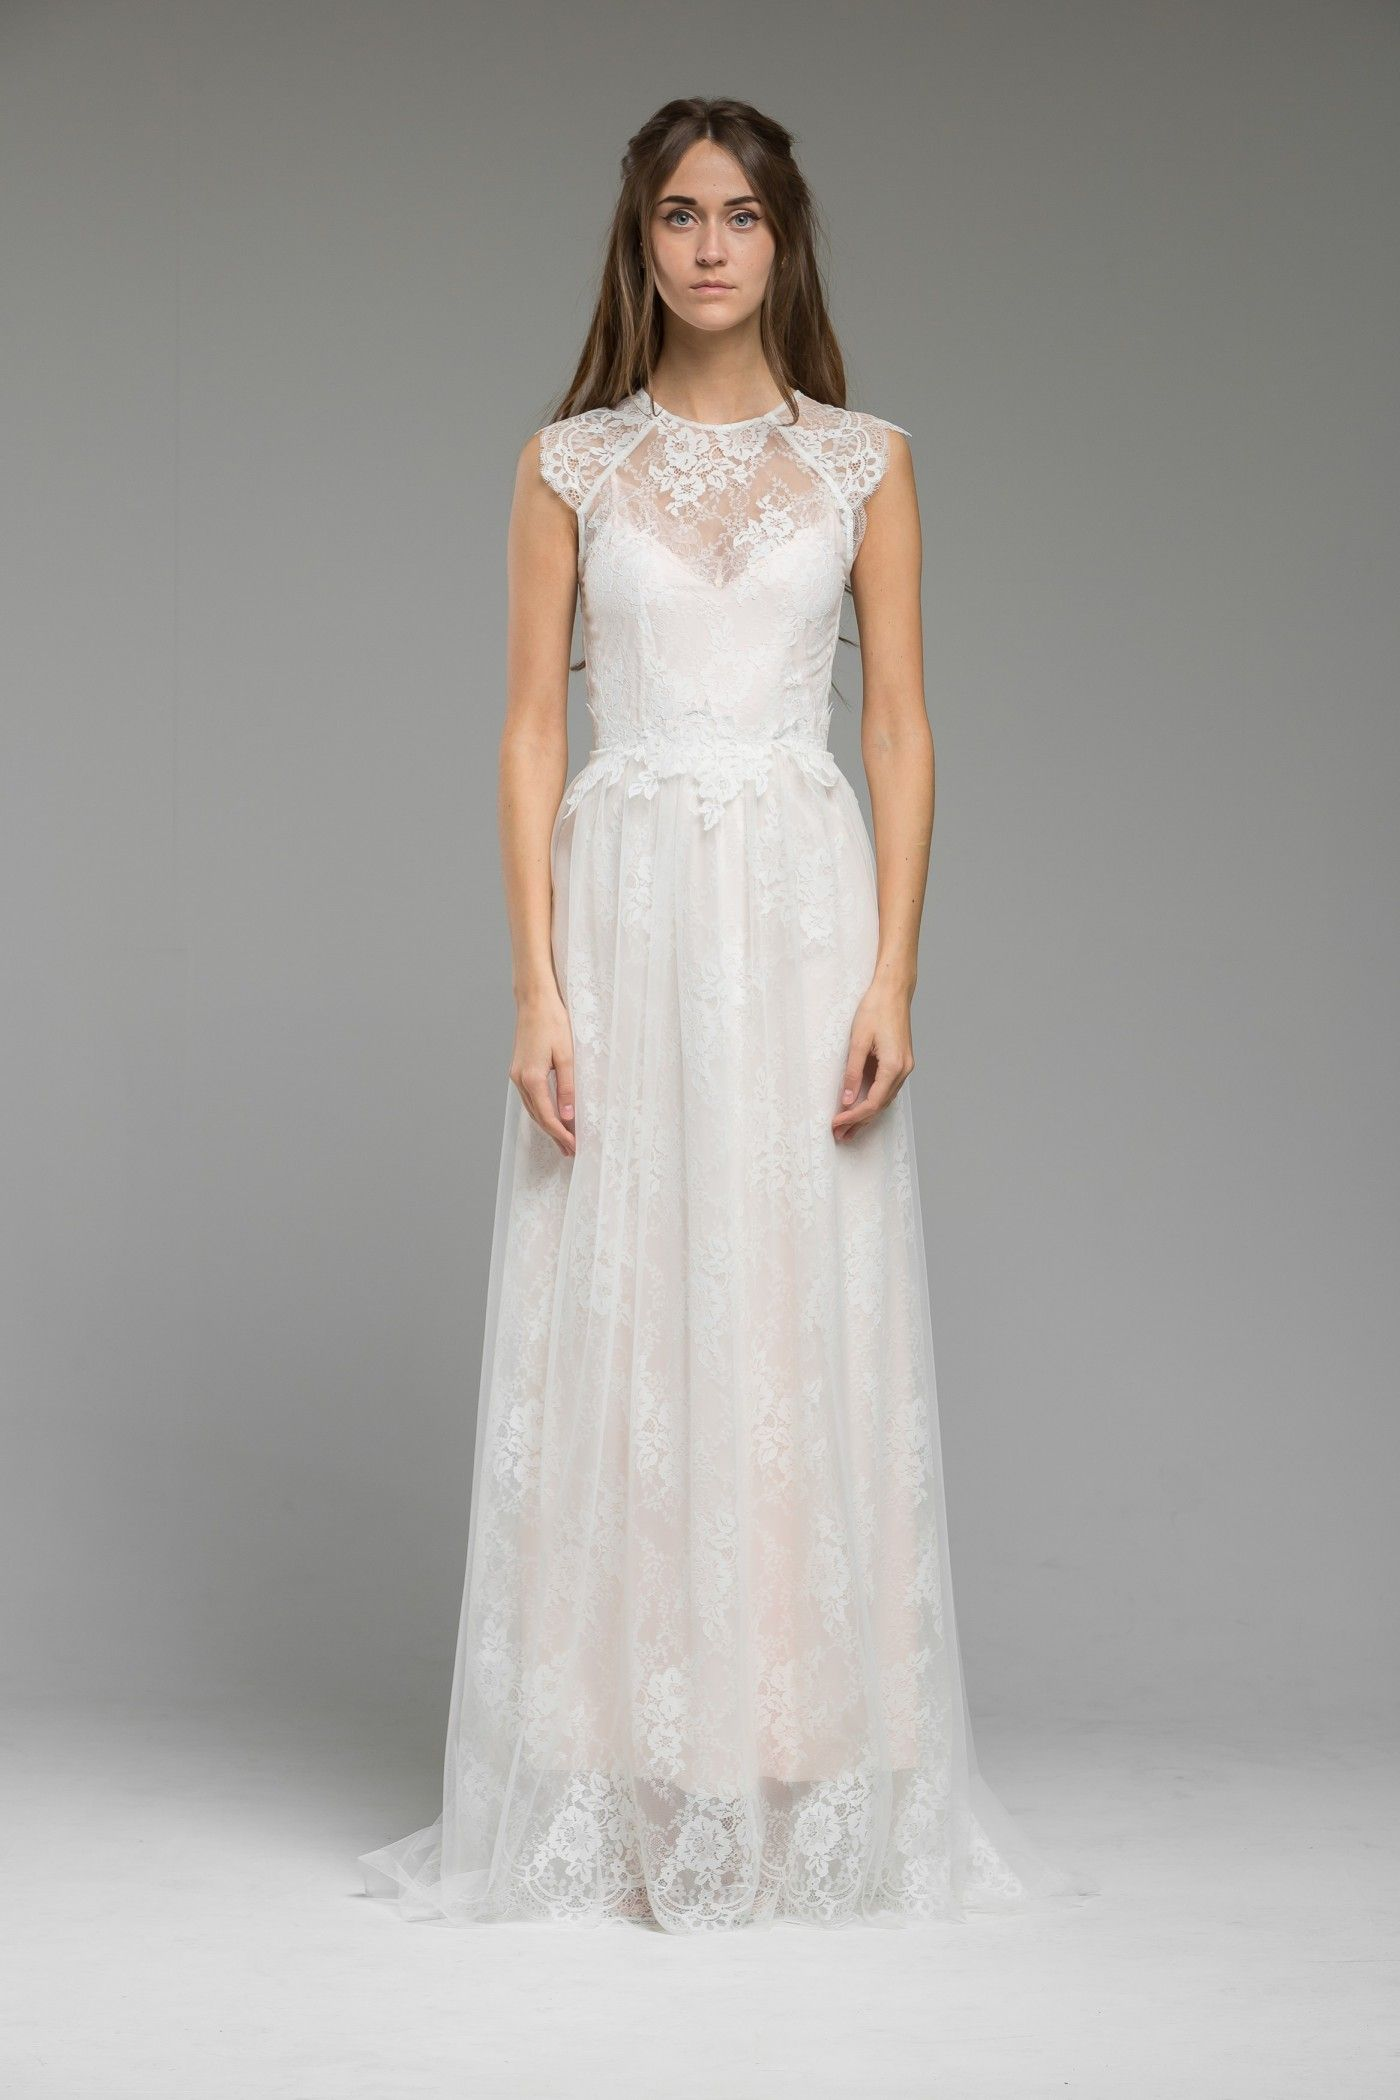 Vintage Inspired Lace Wedding Dress Dresses Gown London